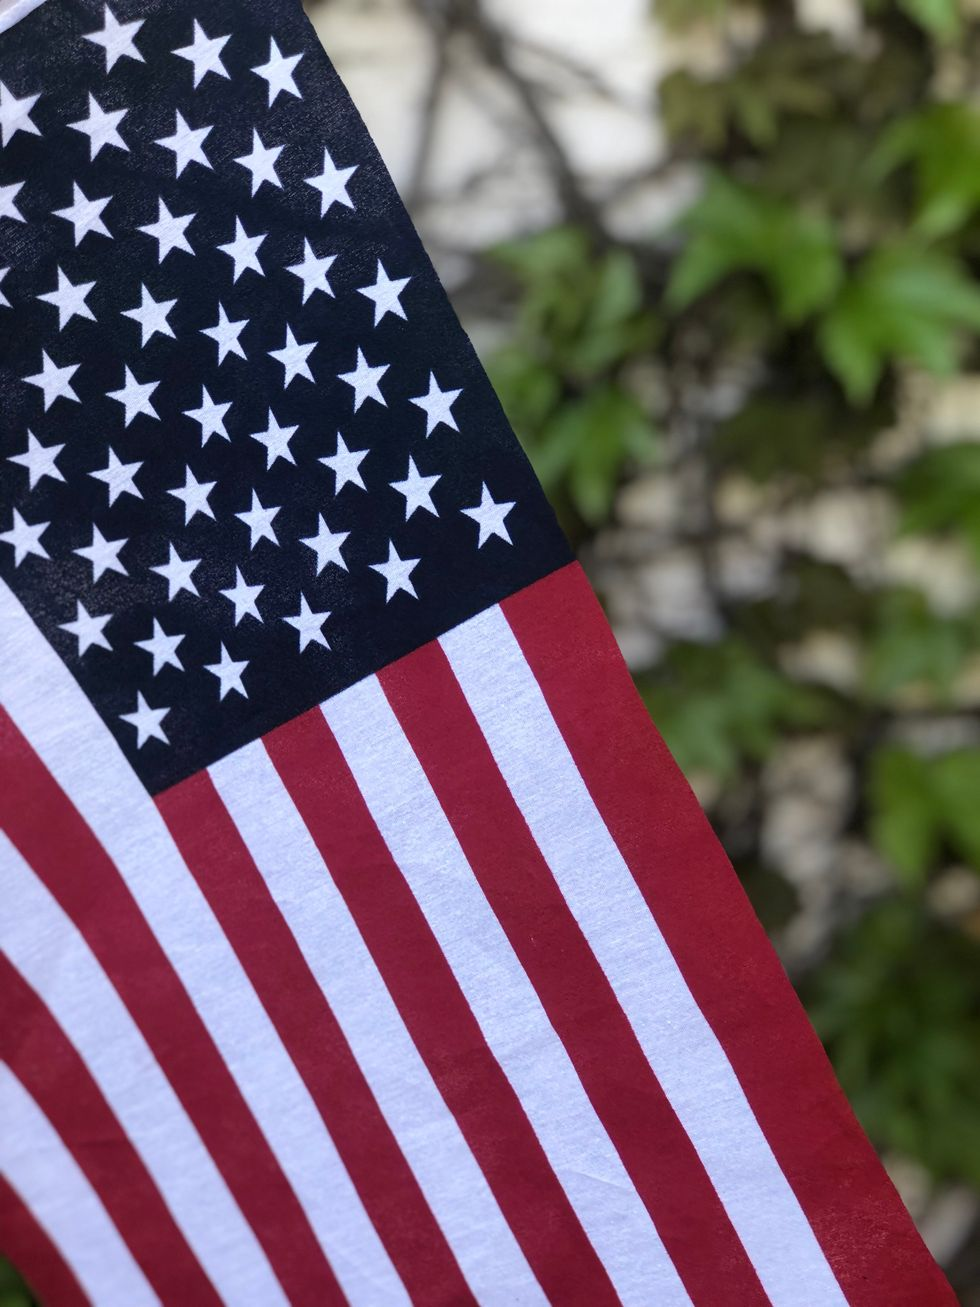 Fourth of July Has Come And Gone, And I'm Thankful To Be An American